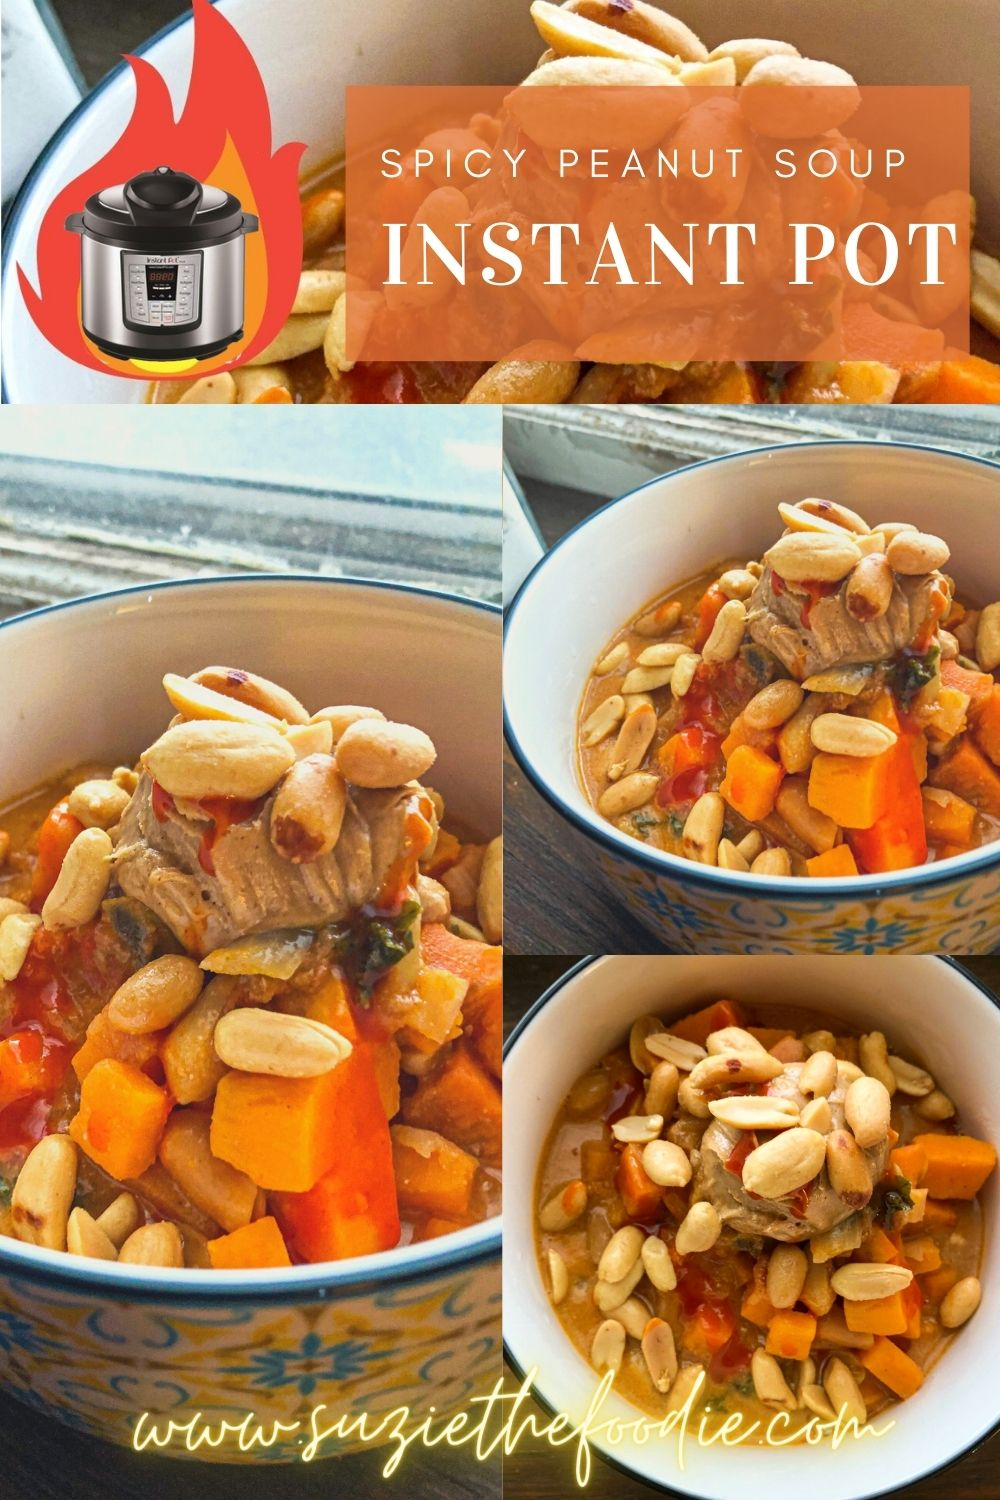 Instant Pot Spicy Peanut Soup with Sweet Potato And Kale